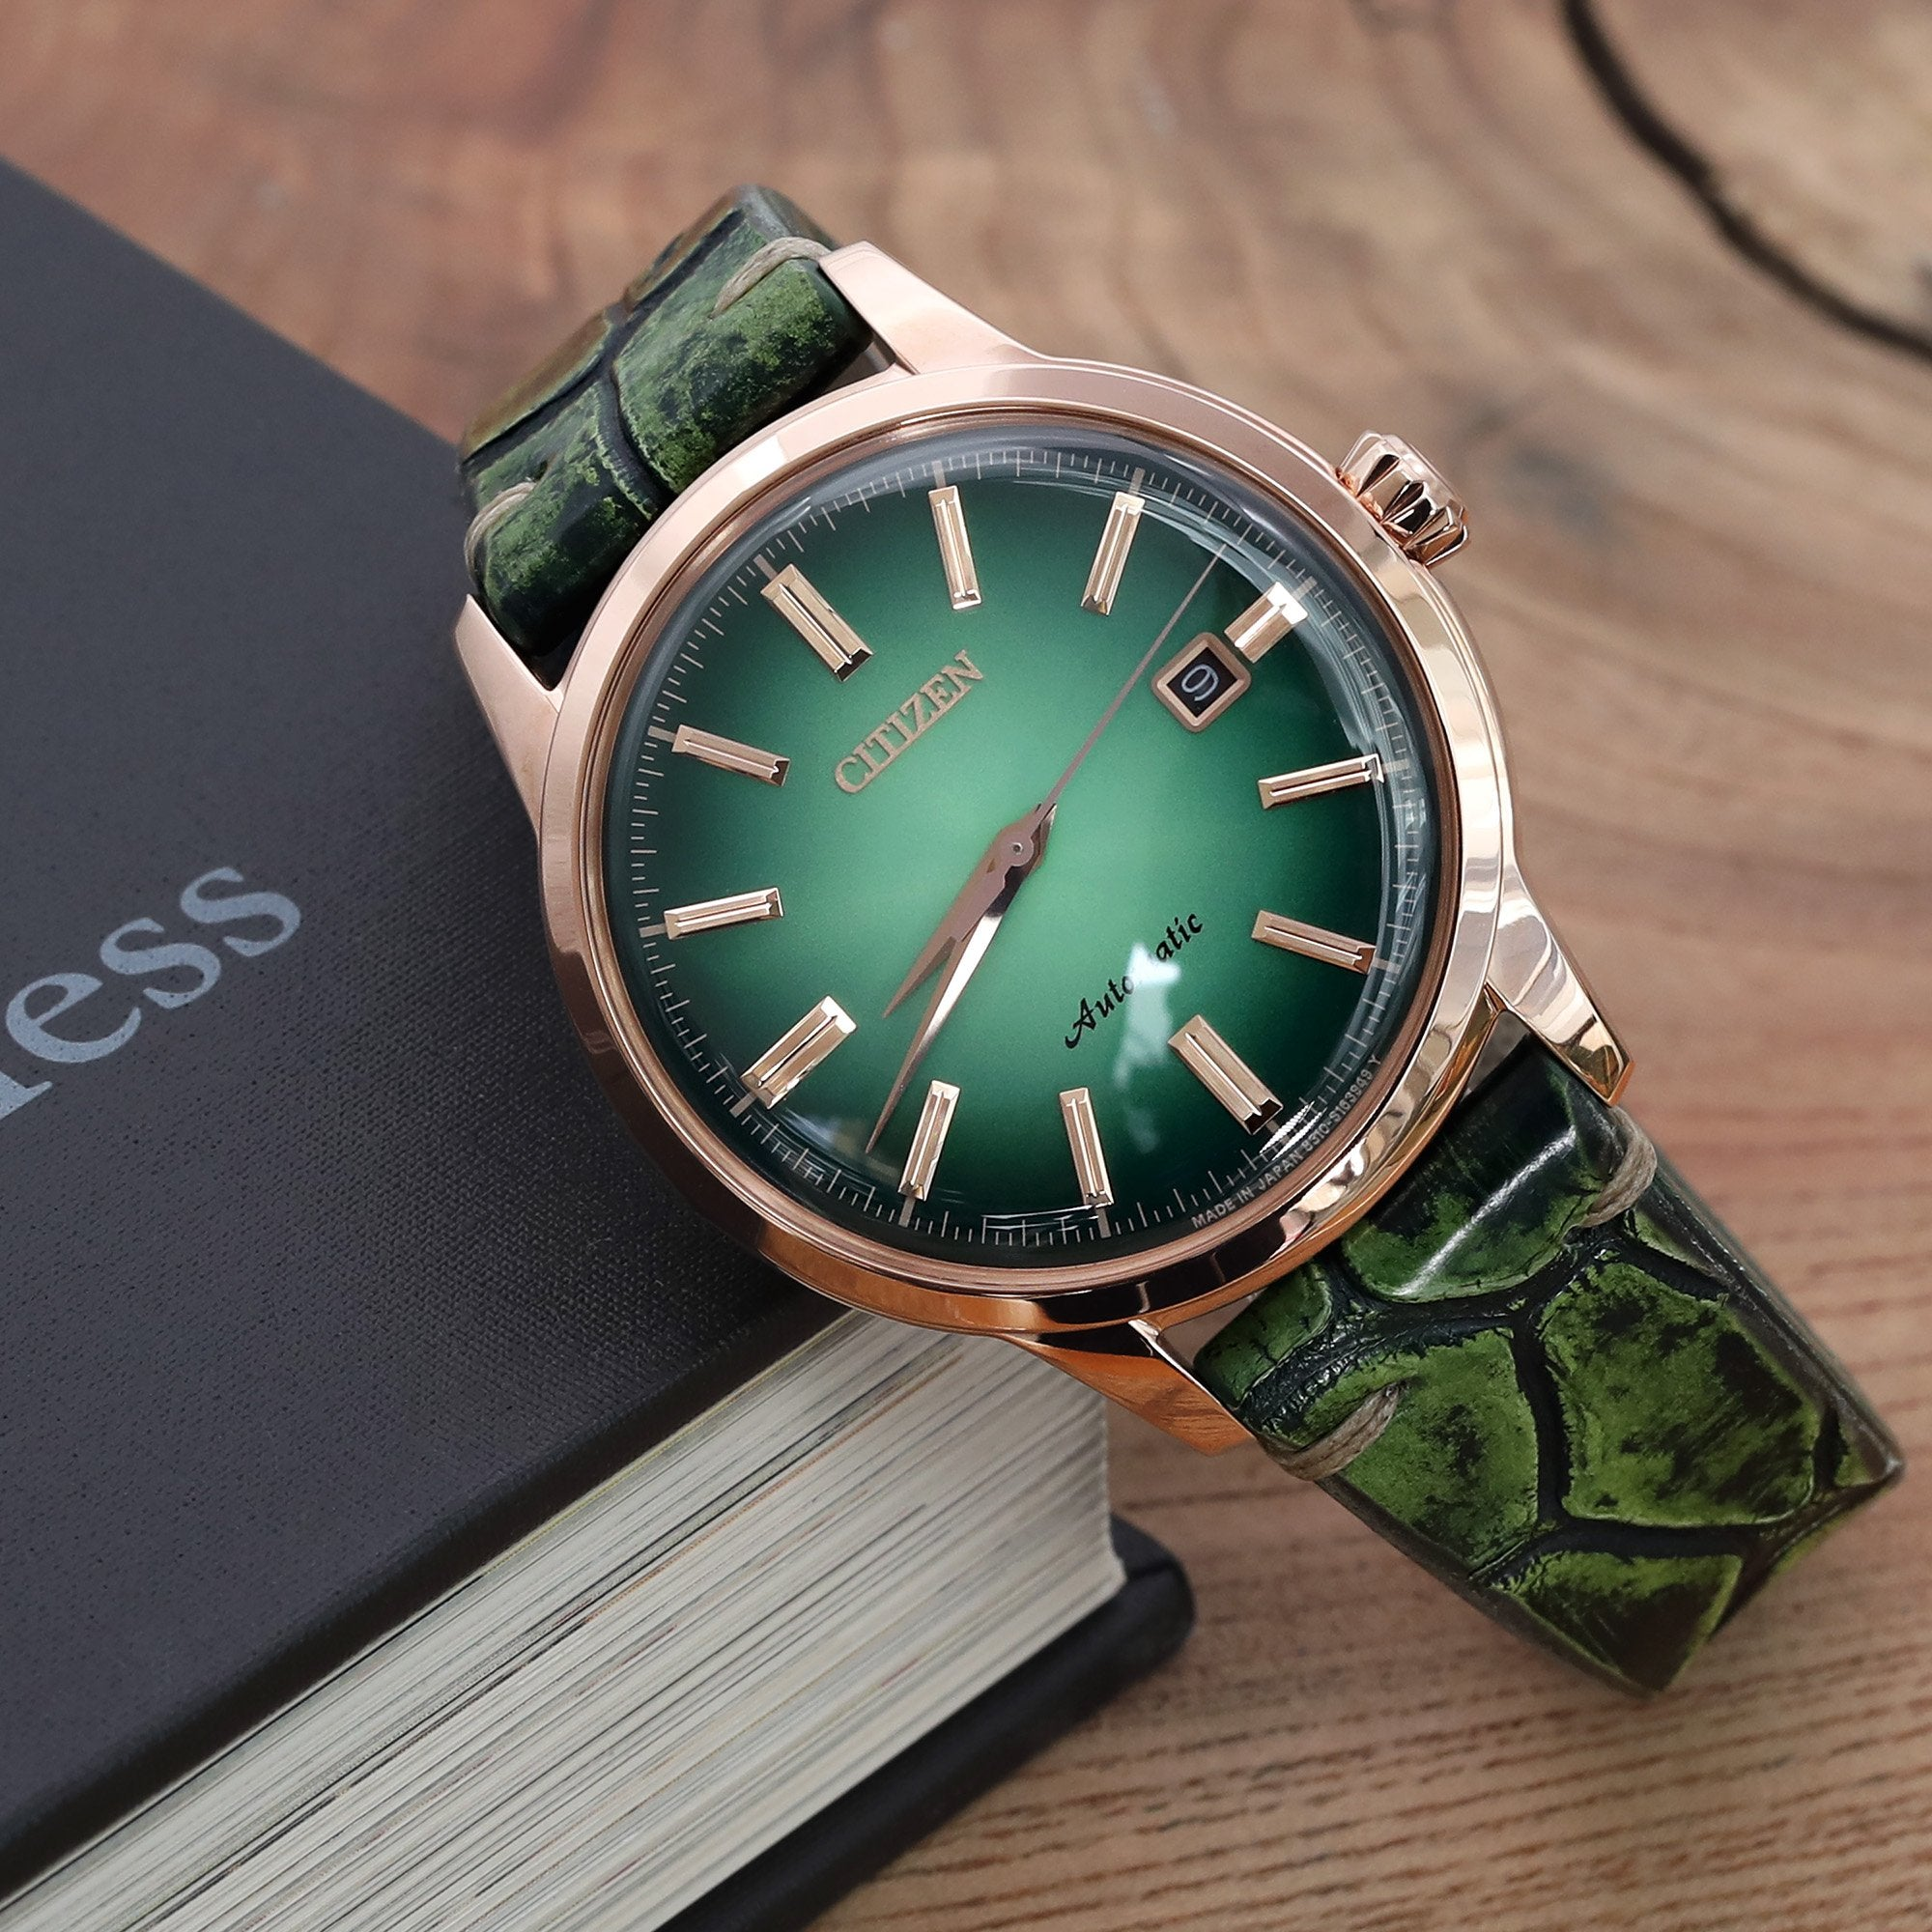 20mm or 22mm MiLTAT Italian Handmade Alligator Belly Vintage Green Watch Strap Strapcode Watch Bands